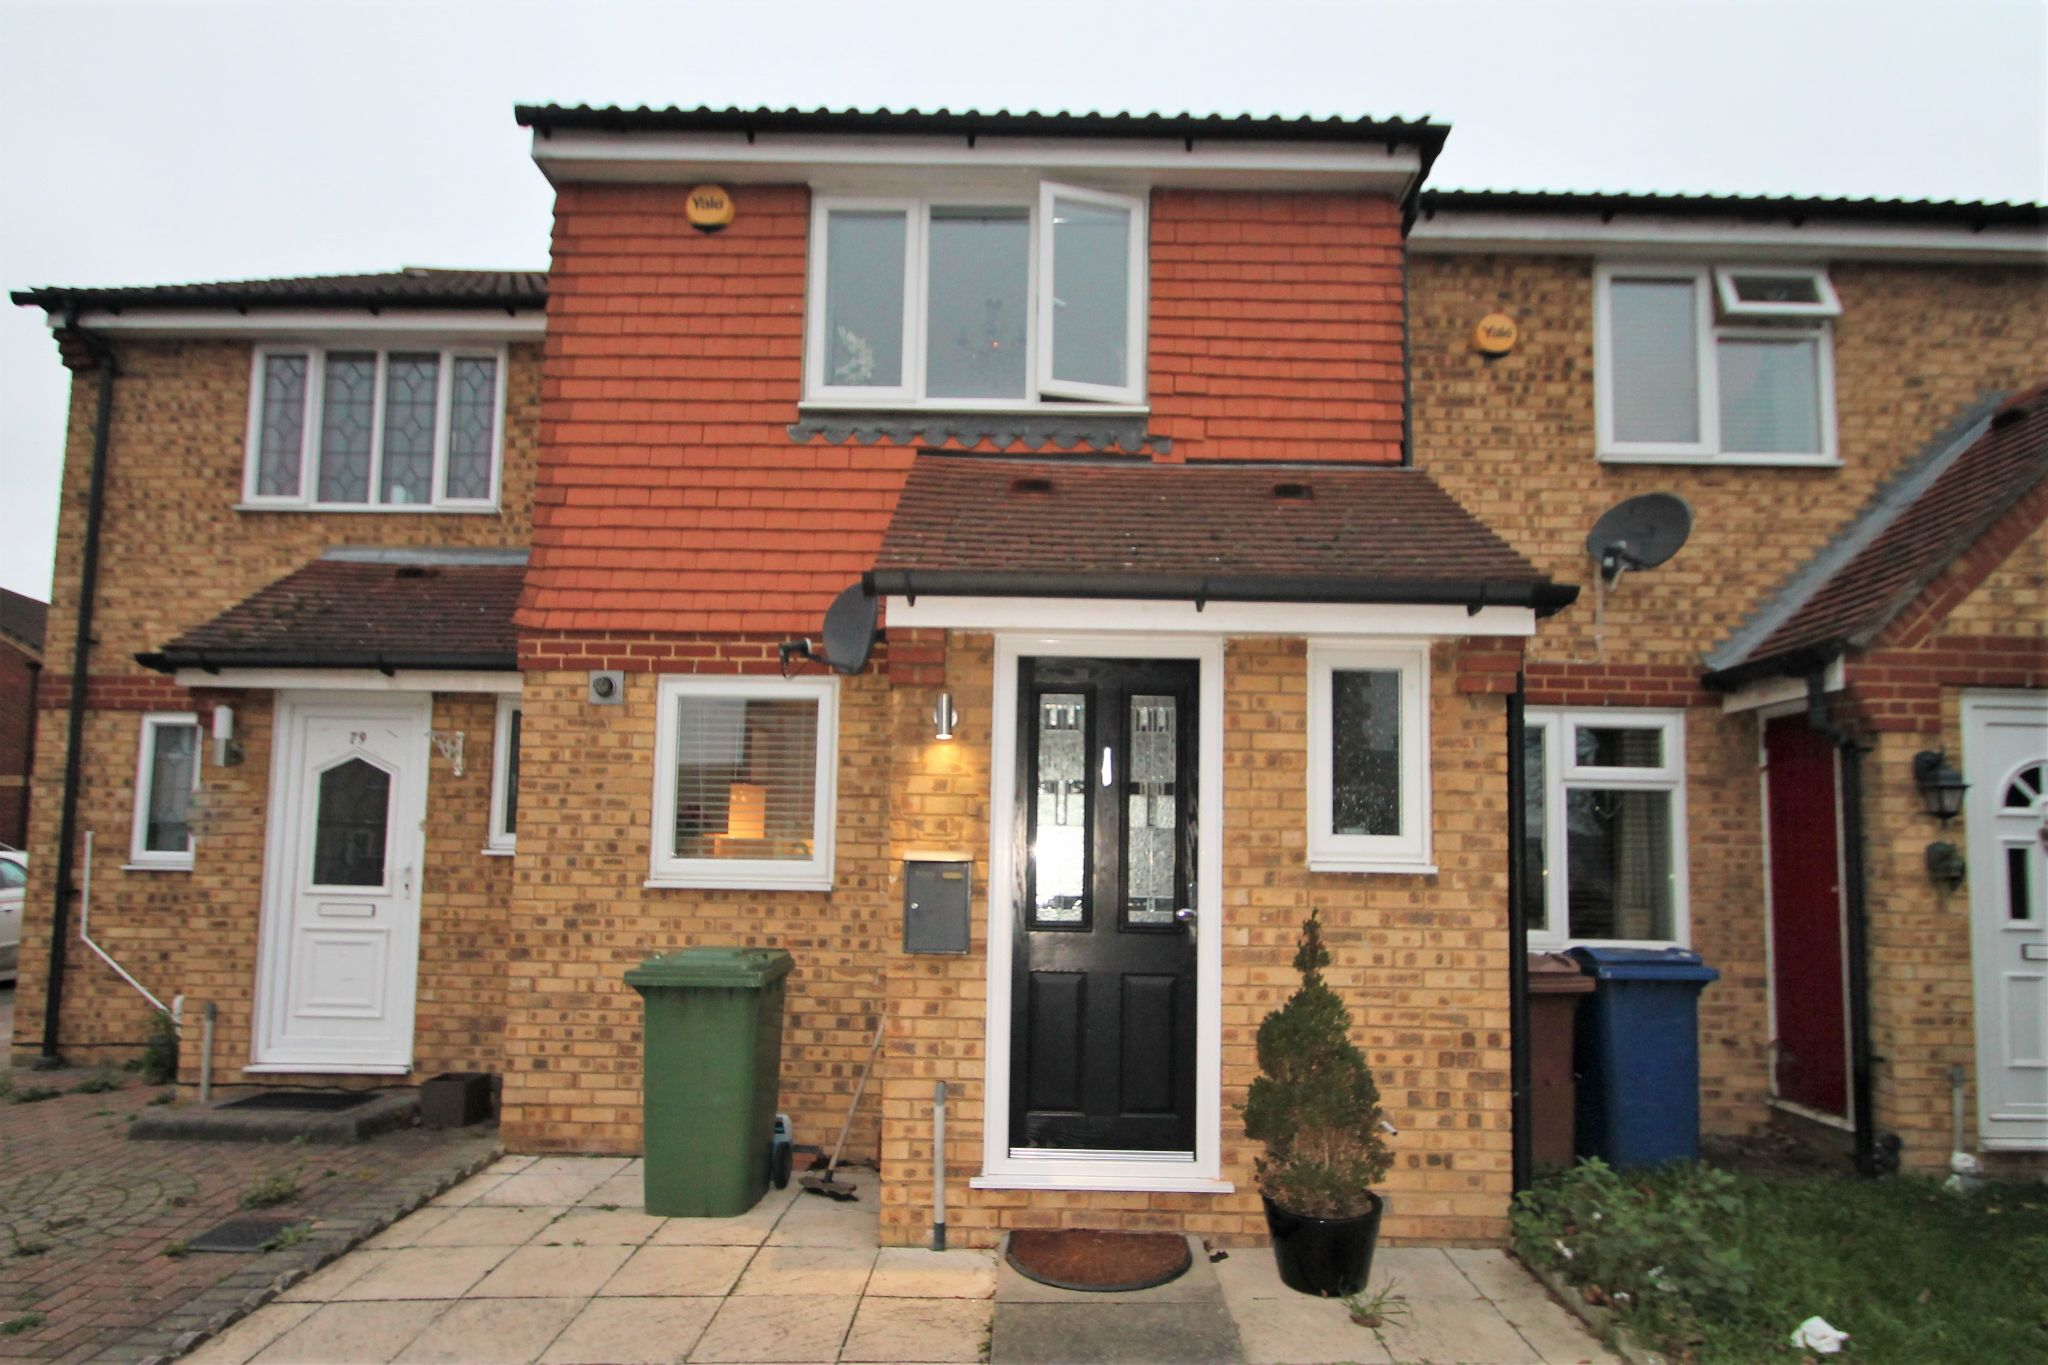 2 Bedroom Mid Terraced House For Sale - Exterior